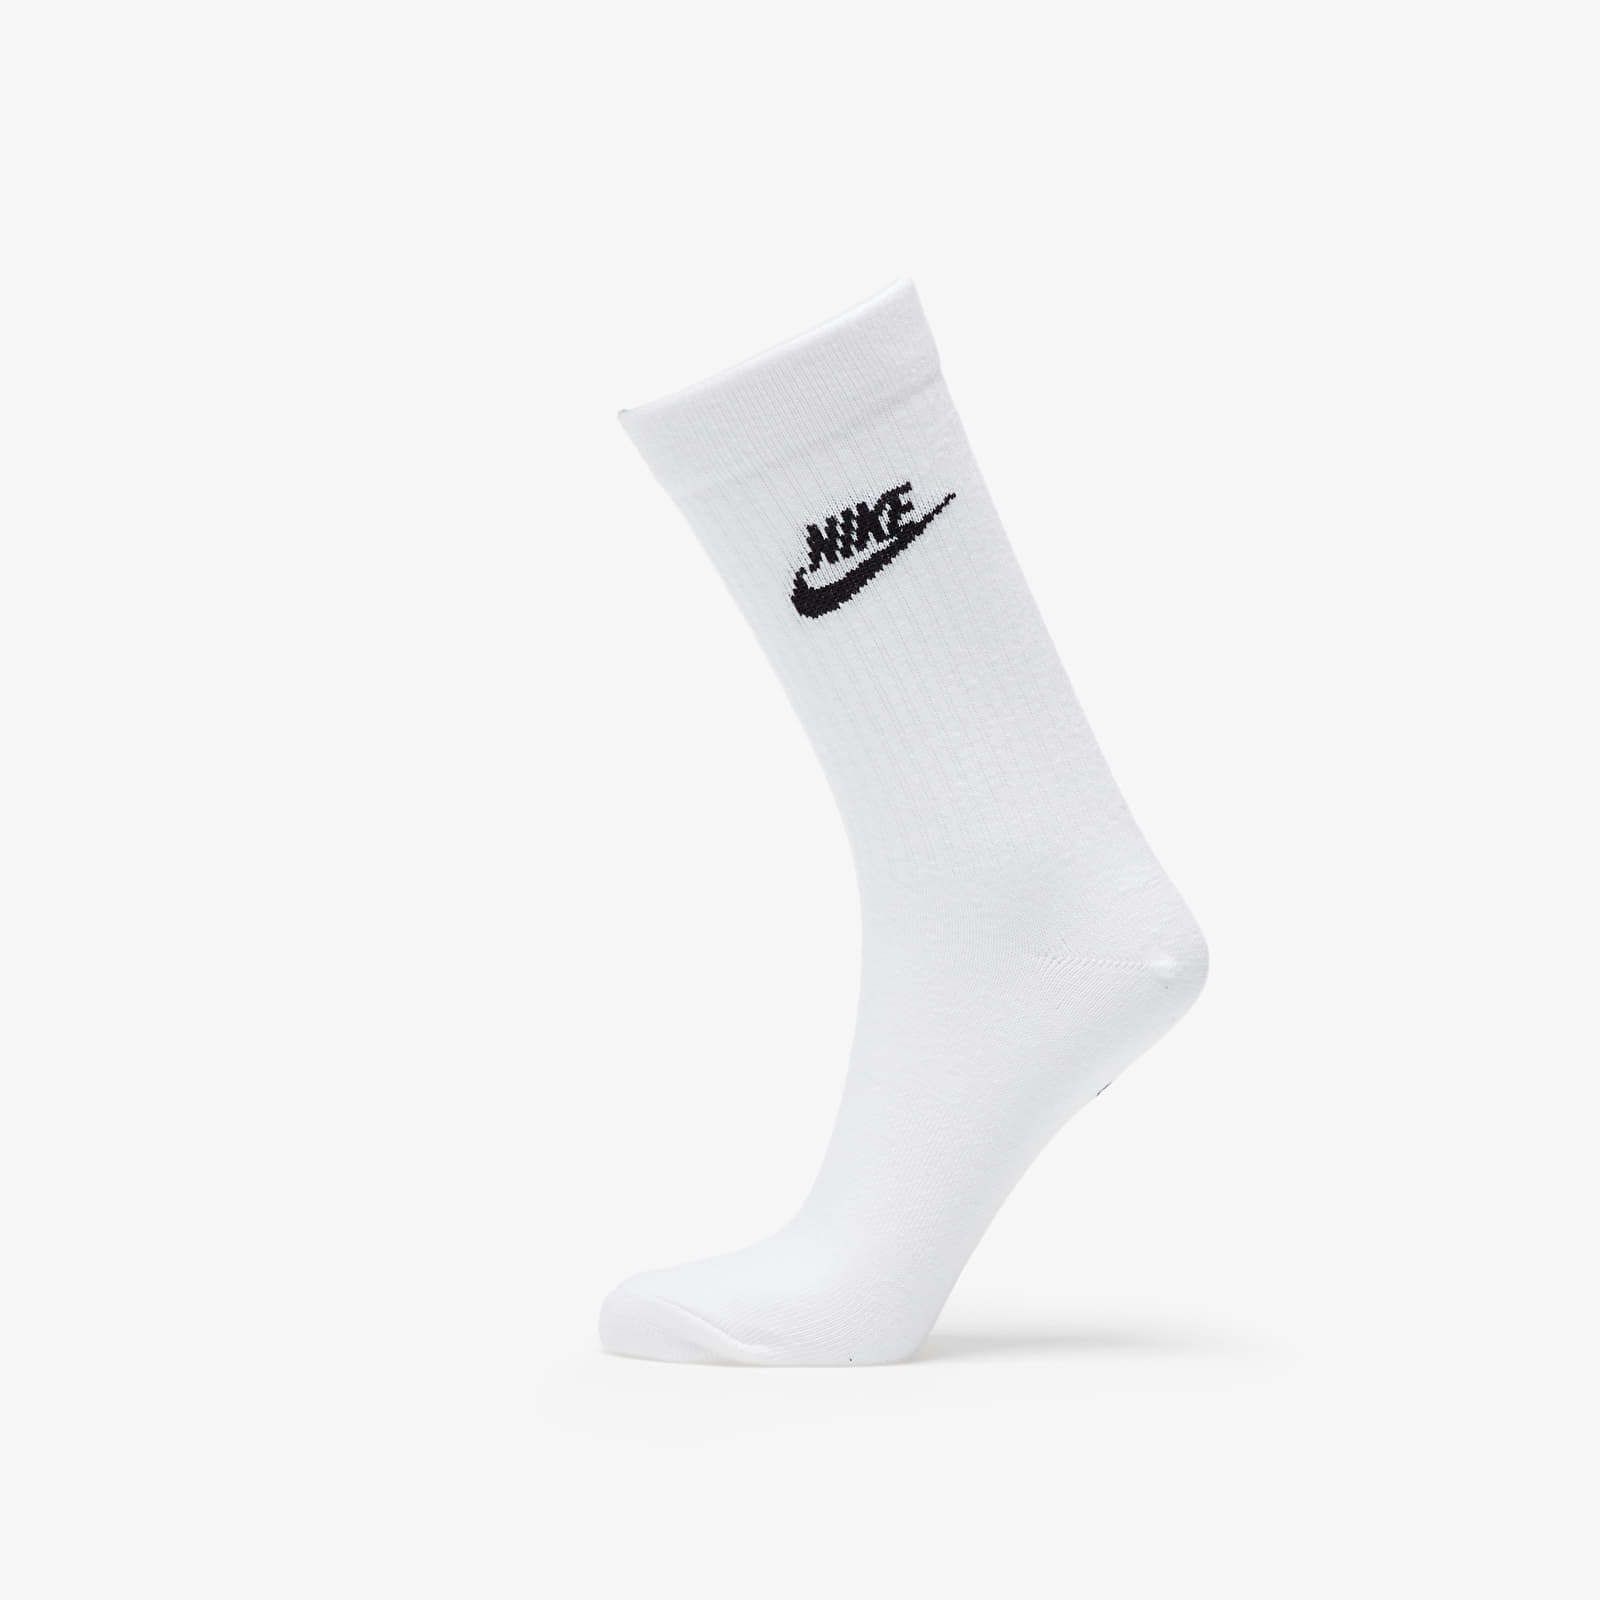 Șosete Nike Sportswear Everyday Essential Crew Socks (3-pack) White/ Black